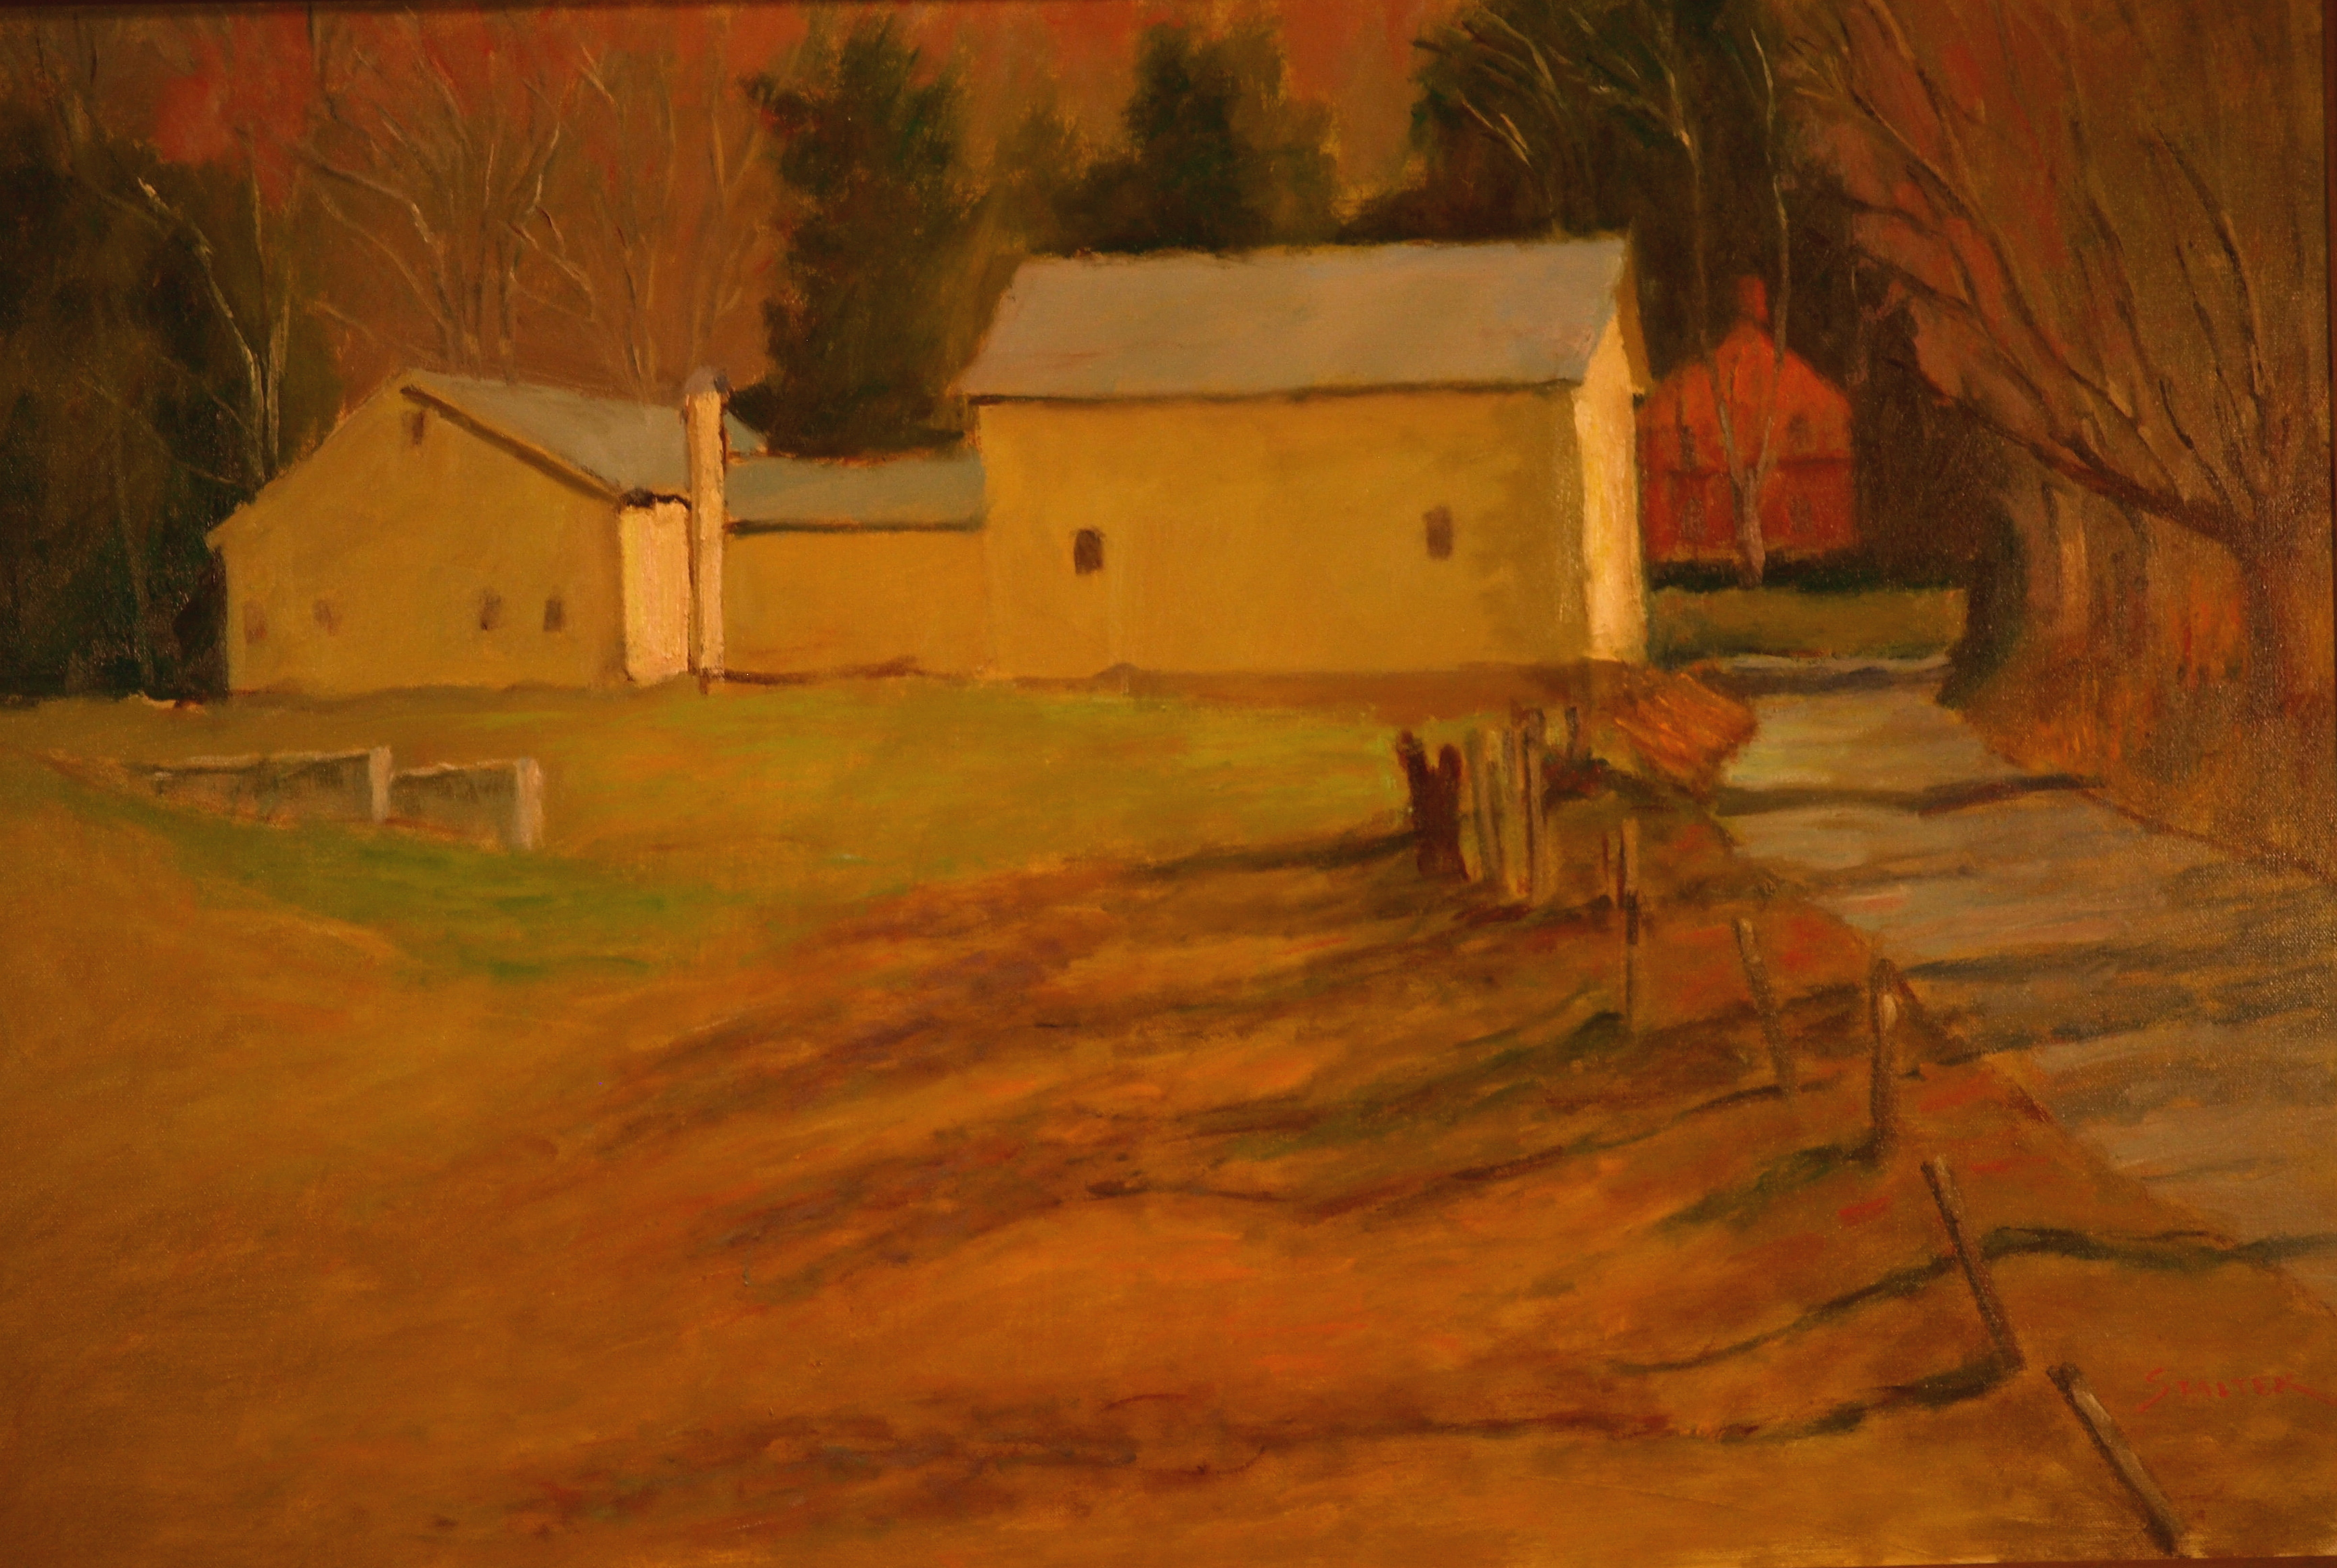 Yellow Barns - Spring, Oil on Canvas, 24 x 36 Inches, by Richard Stalter, $1200